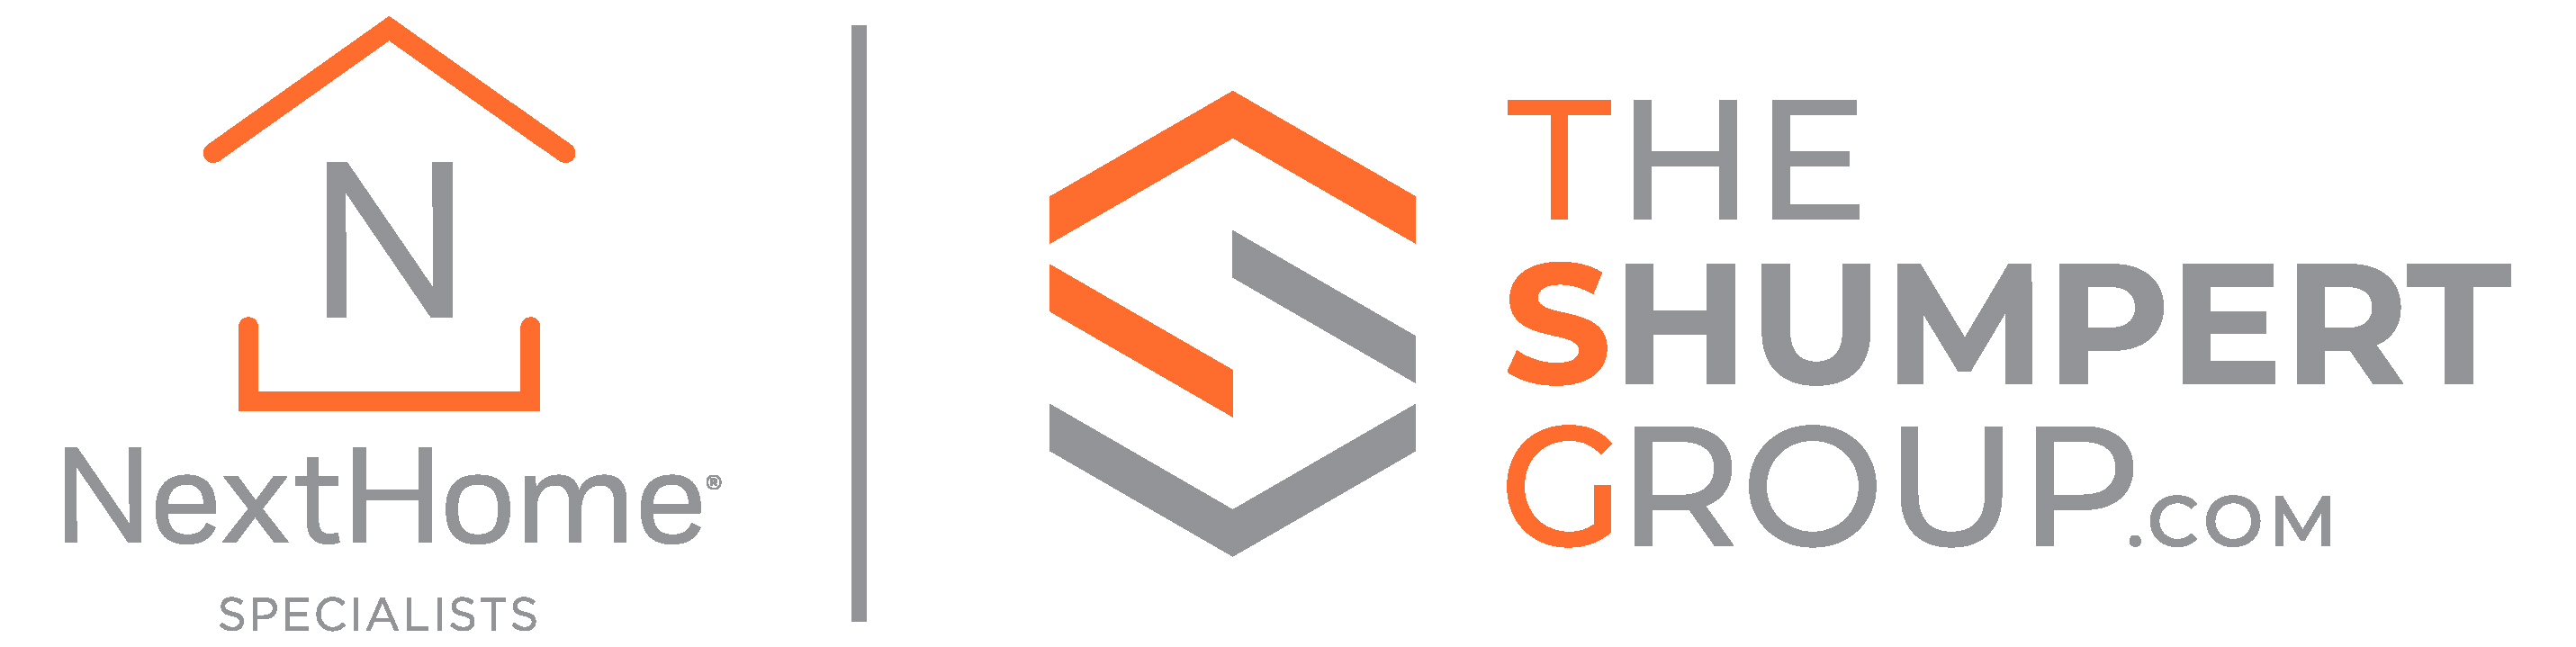 The Shumpert Group @ NextHome Specialists logo